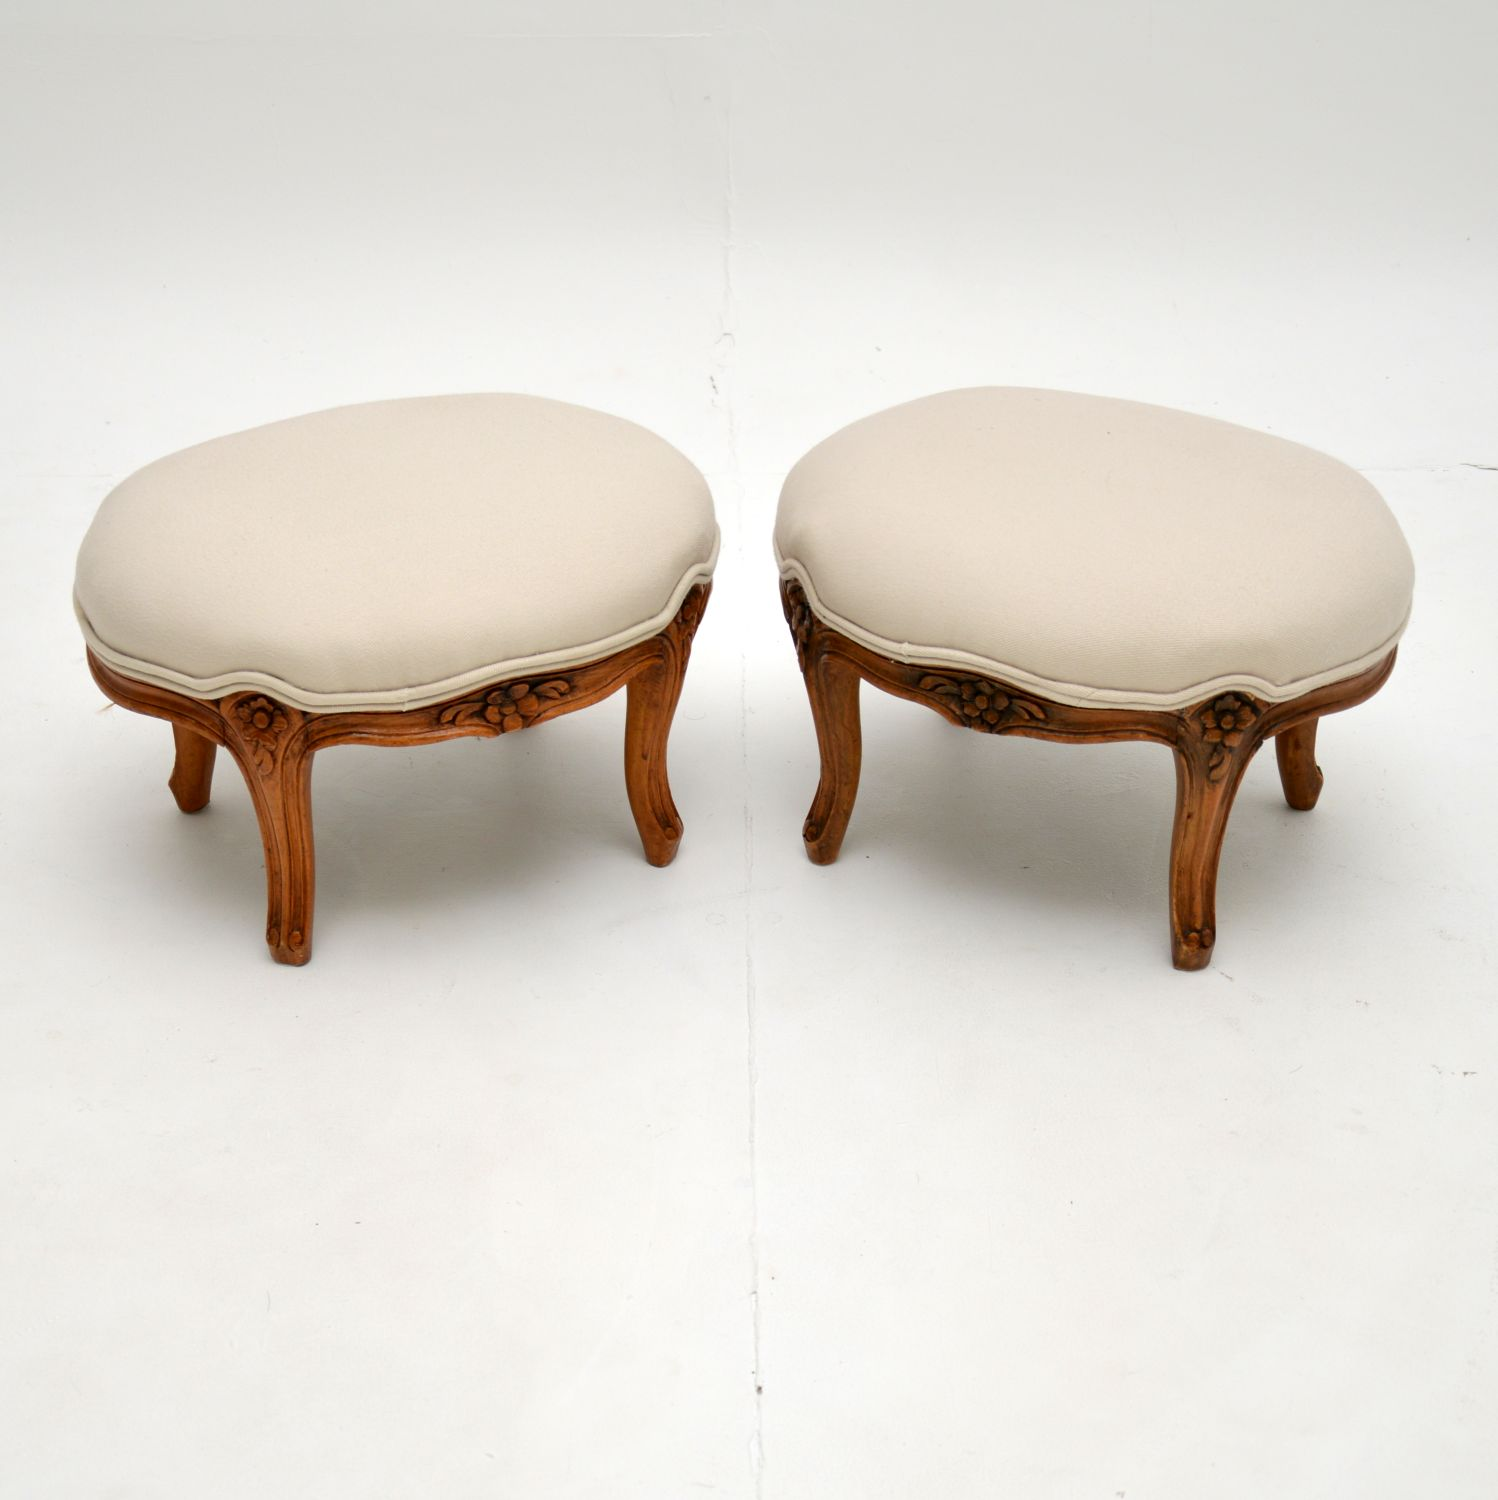 pair of antique french carved walnut foot stools